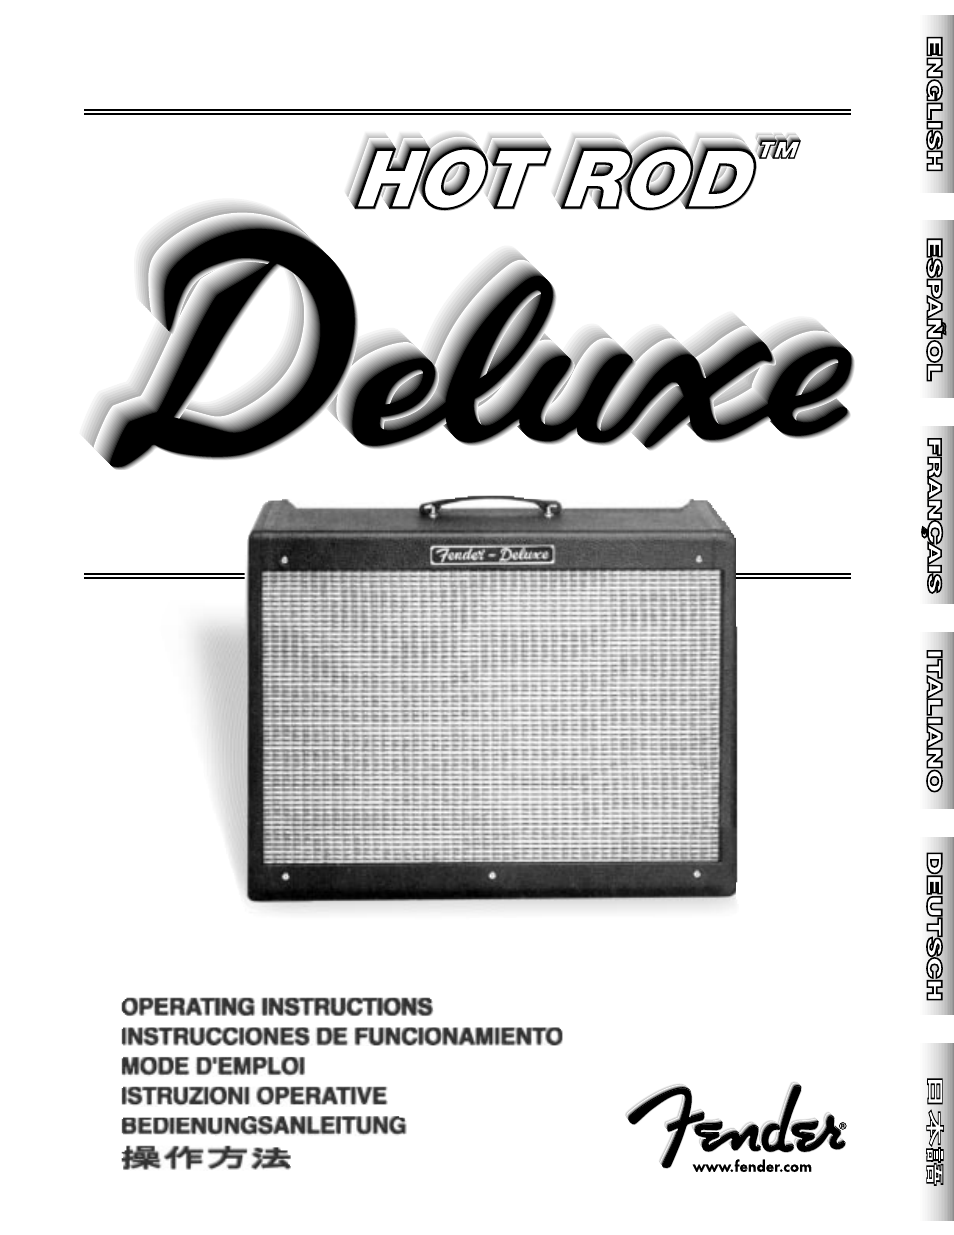 fender hot rod deluxe user manual 20 pages original mode rh manualsdir com fender hot rod deluxe user manual fender hotrod deluxe service manual